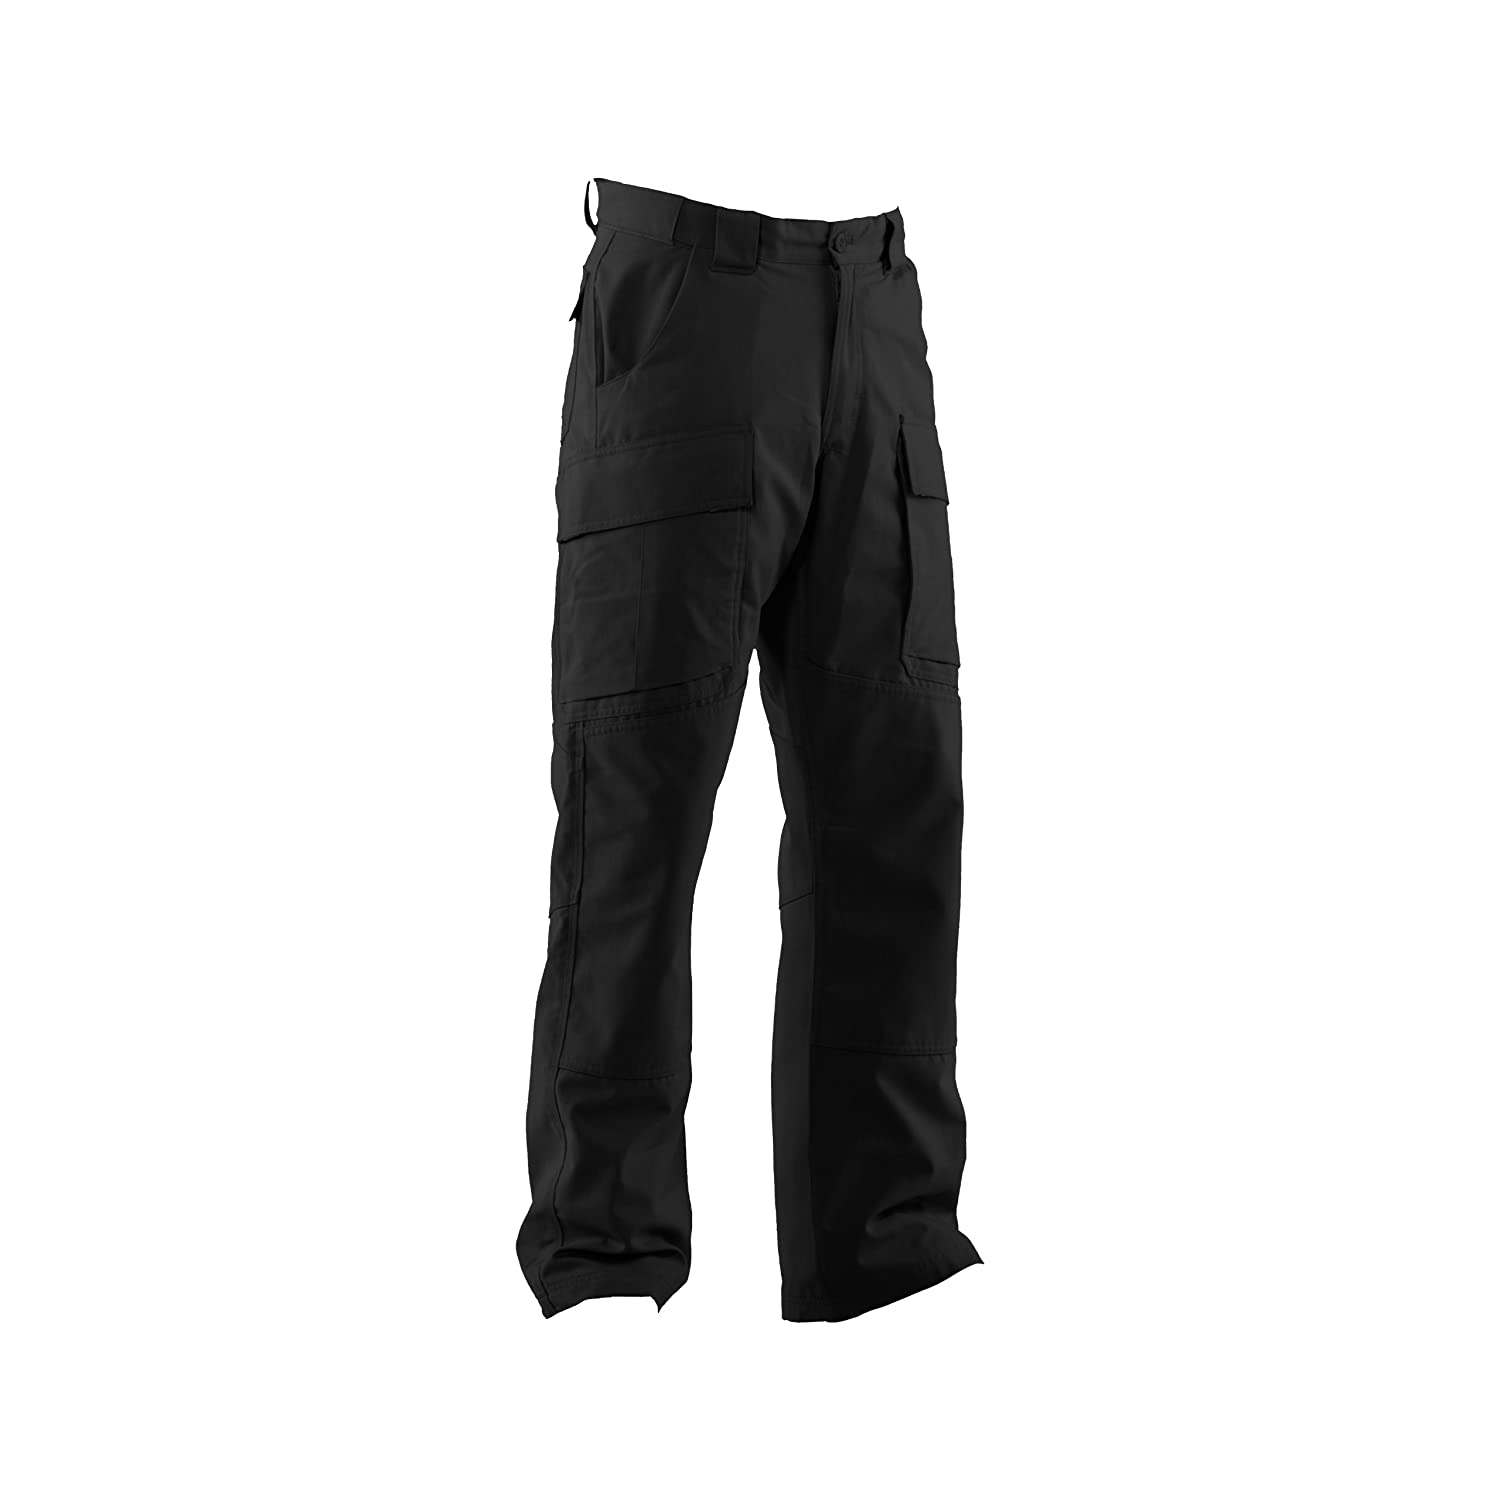 Under Armour Cargo-Hose, Schwarz, 40 /34, UA1230536S-4034